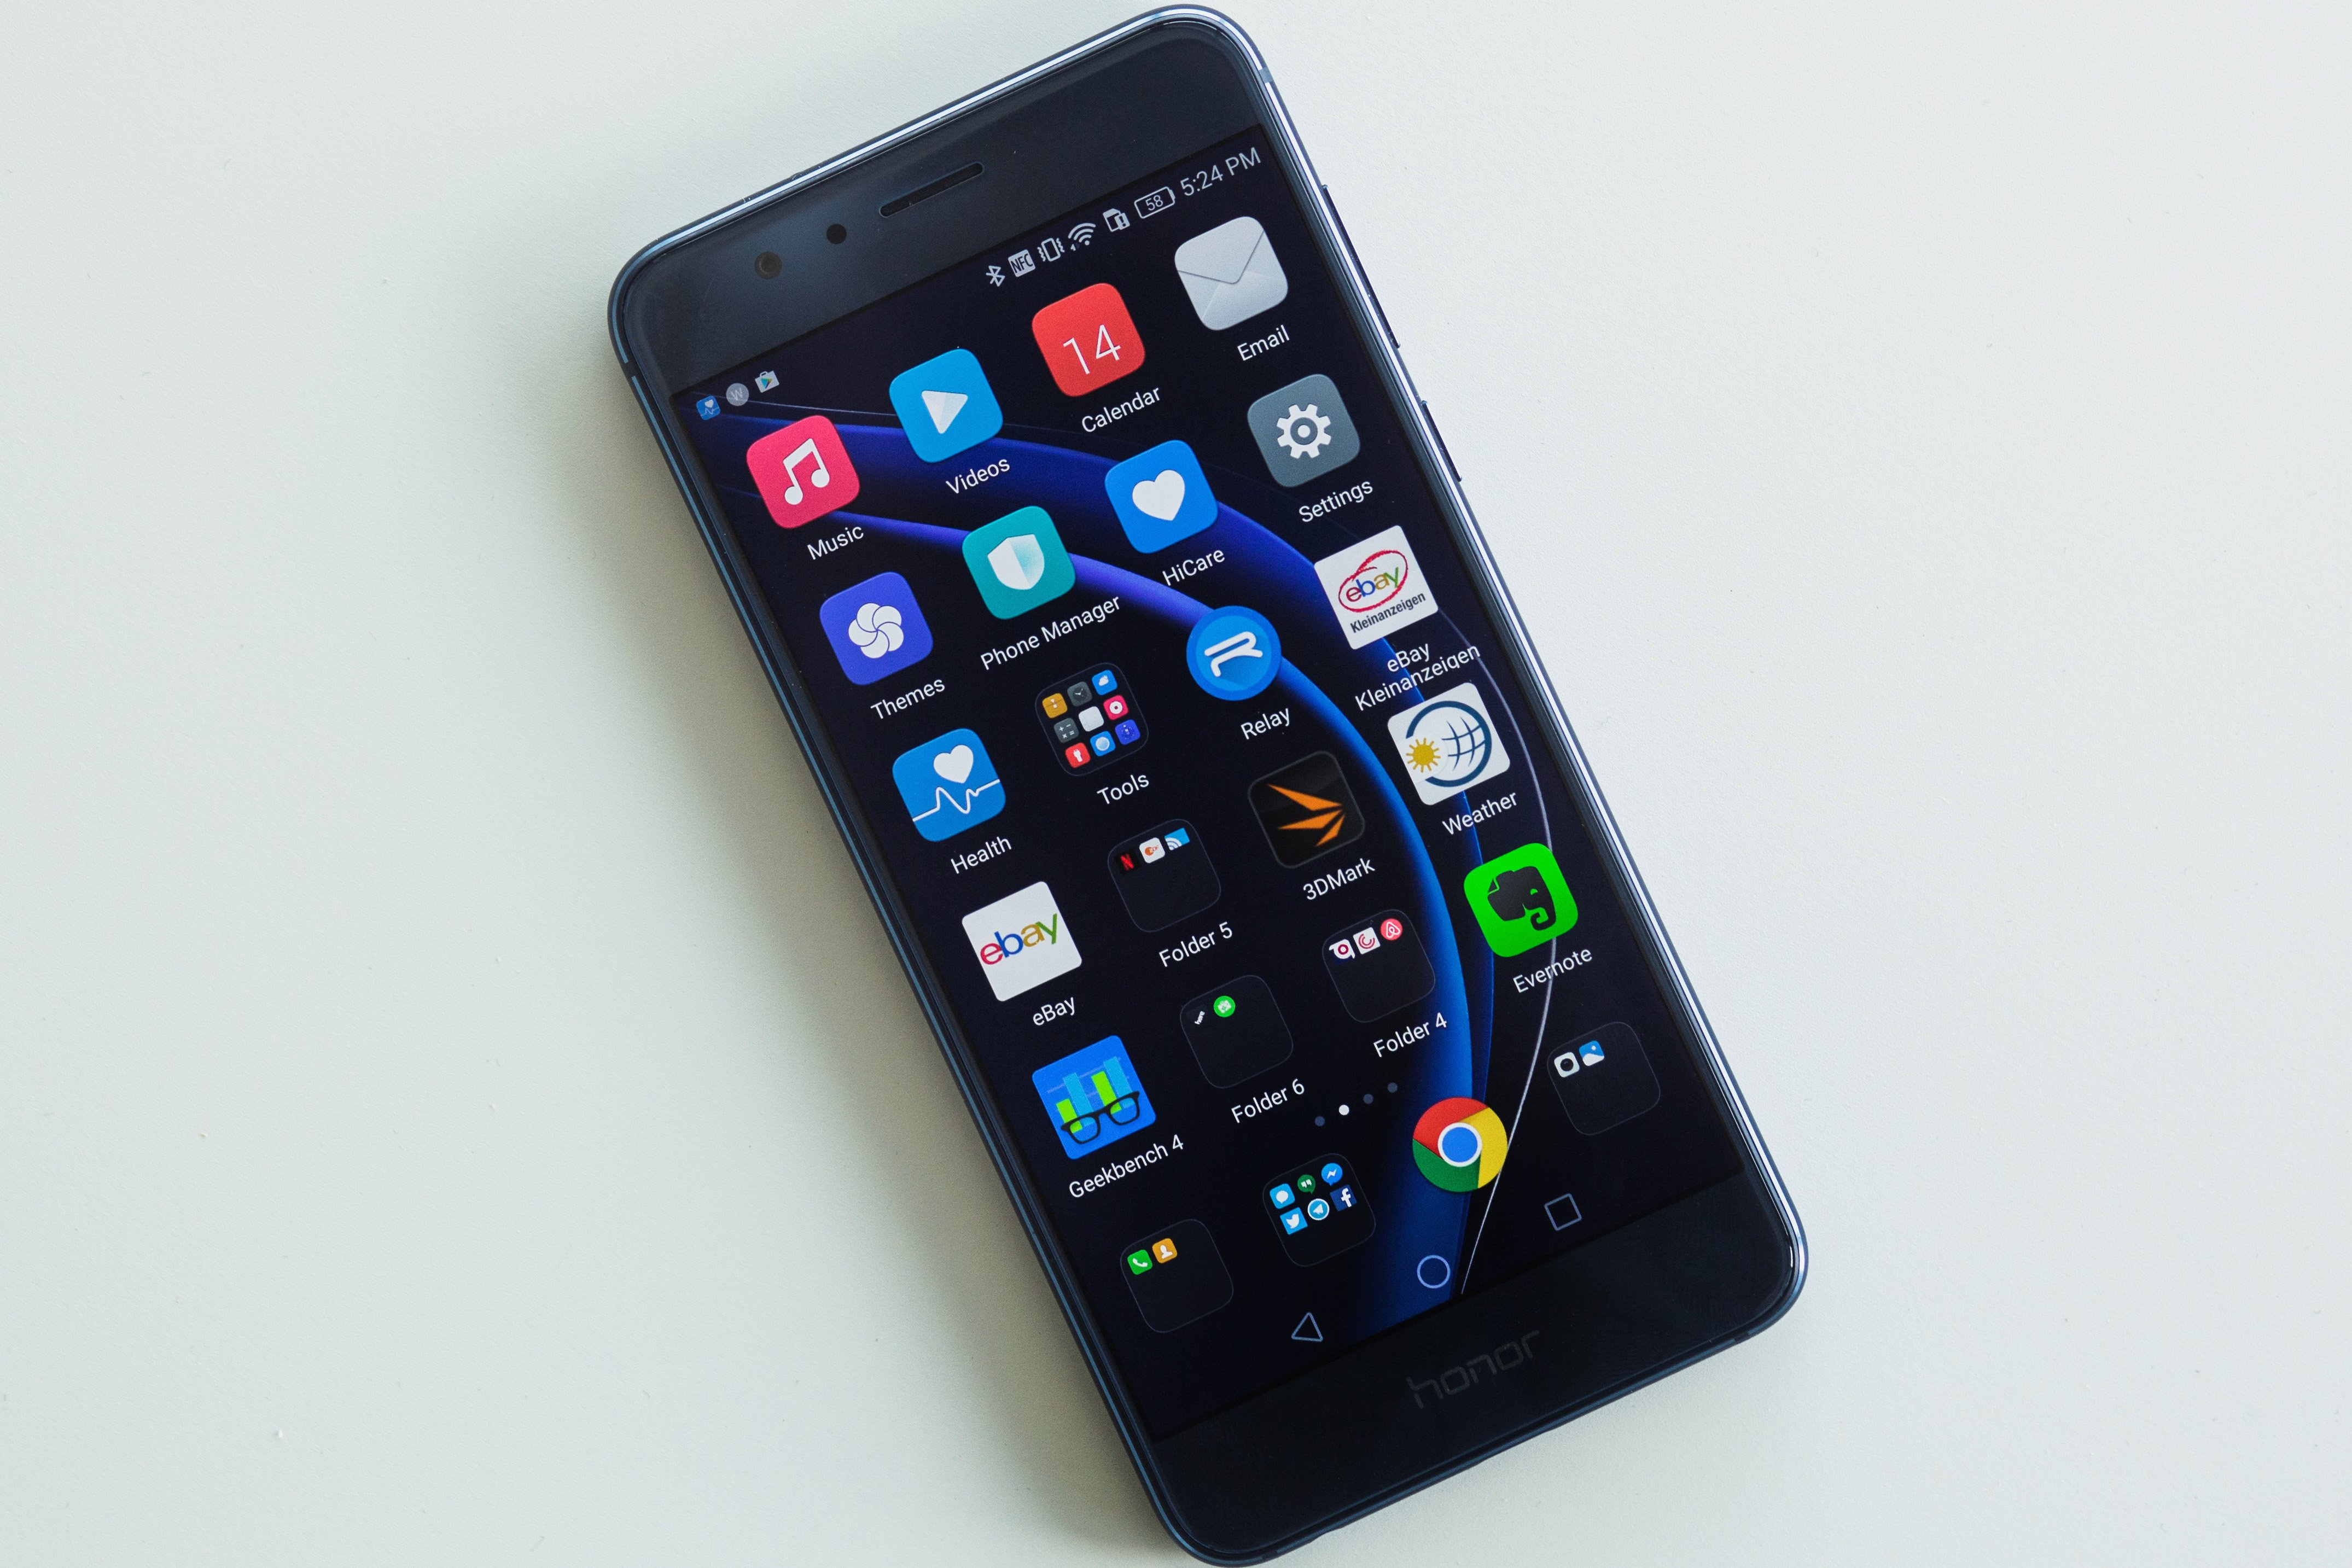 How to Update Honor 8 to Android Nougat Manually - Android - The Honor 8 Android Nougat Update is 1.4GB in size and it's available as a beta.